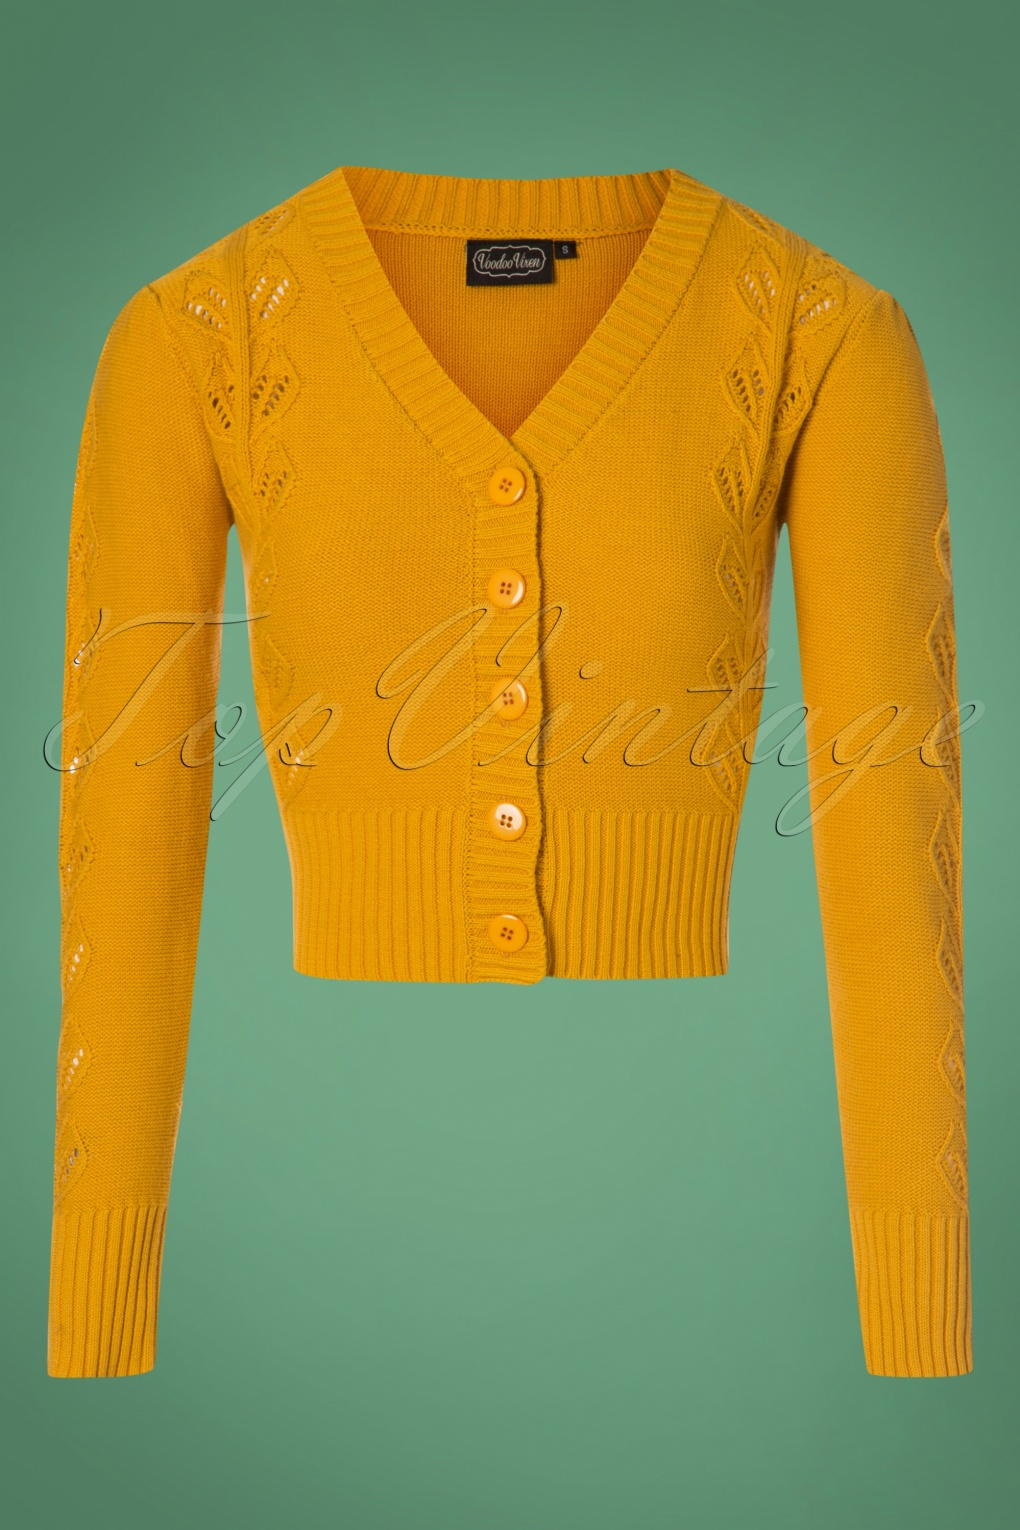 Vintage Sweaters: Cable Knit, Fair Isle Cardigans & Sweaters 40s Julia Cardigan in Mustard £38.27 AT vintagedancer.com